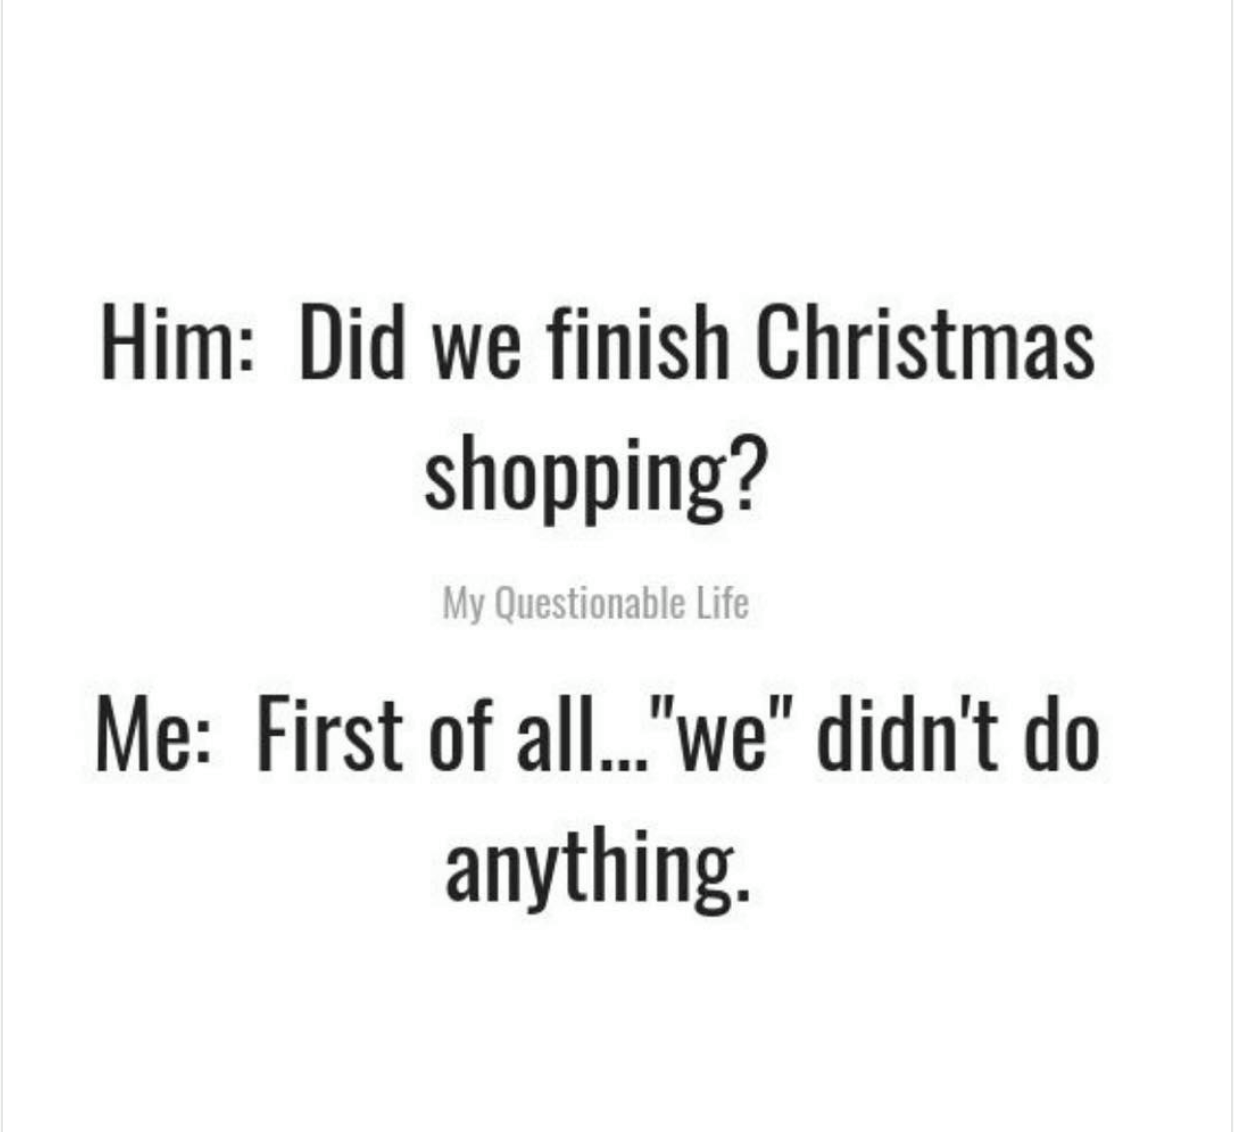 Pin By Nikki Johnson On Holidays Occassions Funny Quotes Christmas Humor Christmas Shopping